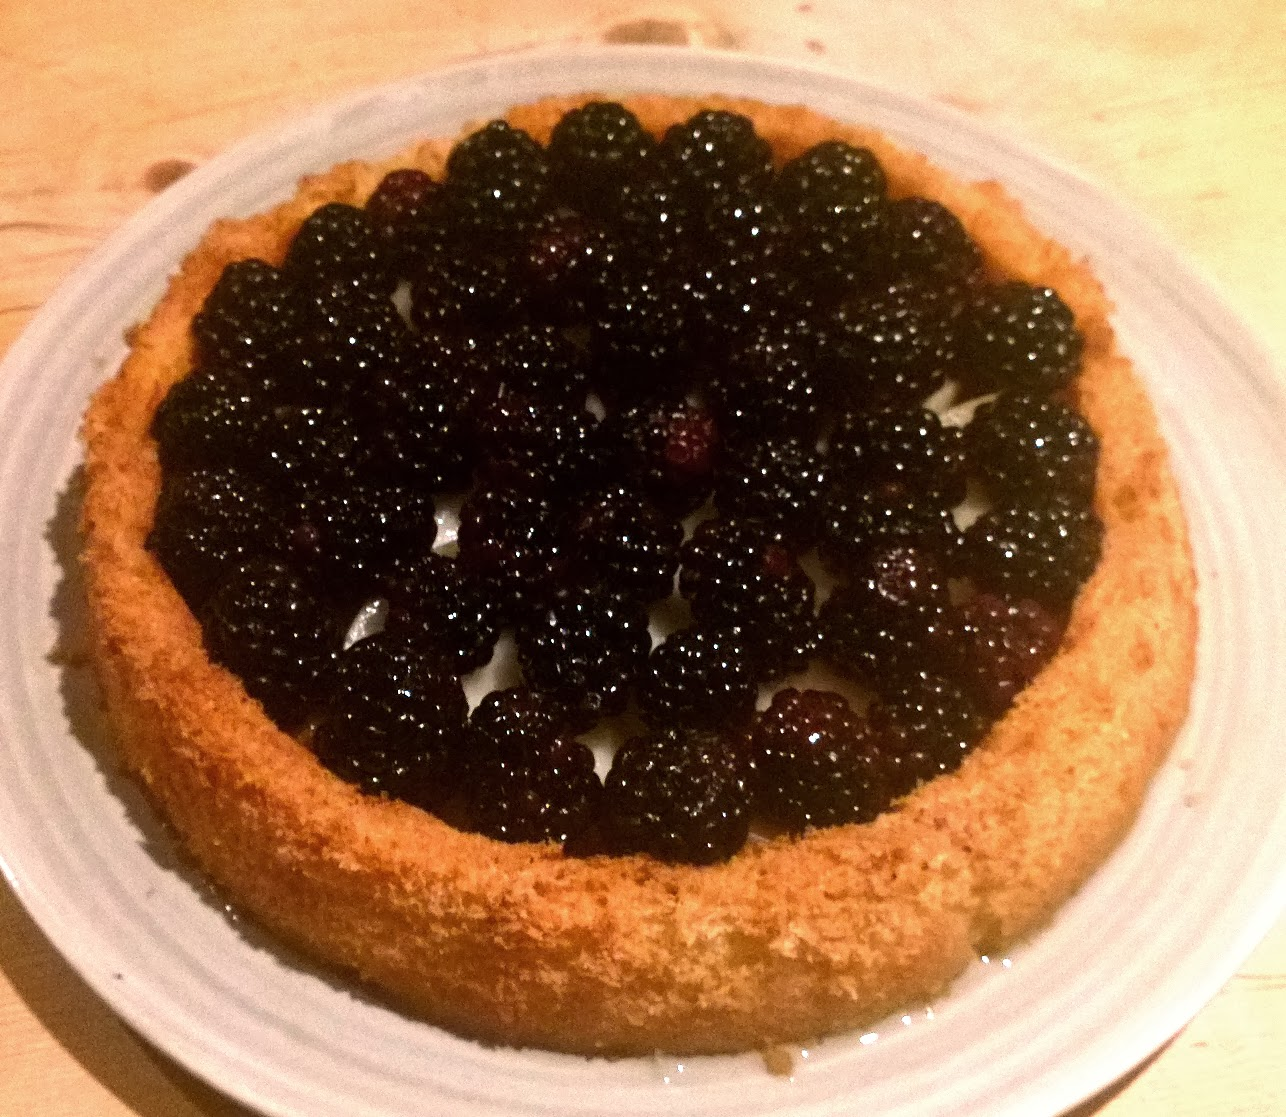 Charlie makes cakes pear and blackberry sponge flan with for Blackberry pear jam